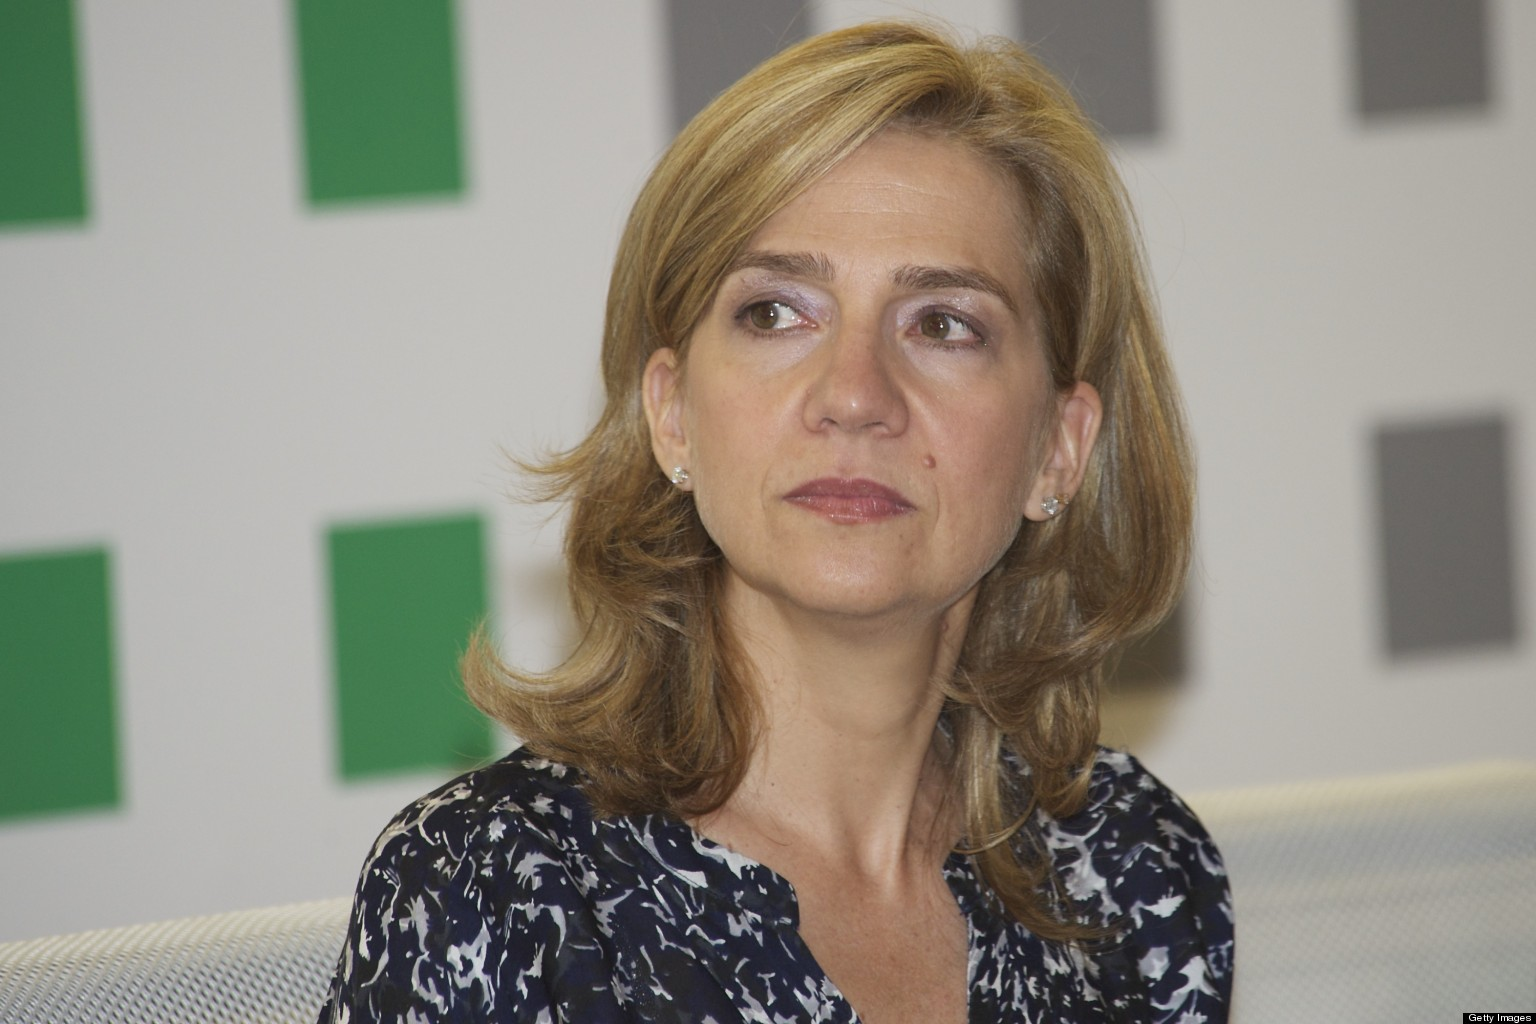 Spain Princess Faces Fraud, Laundering Charges